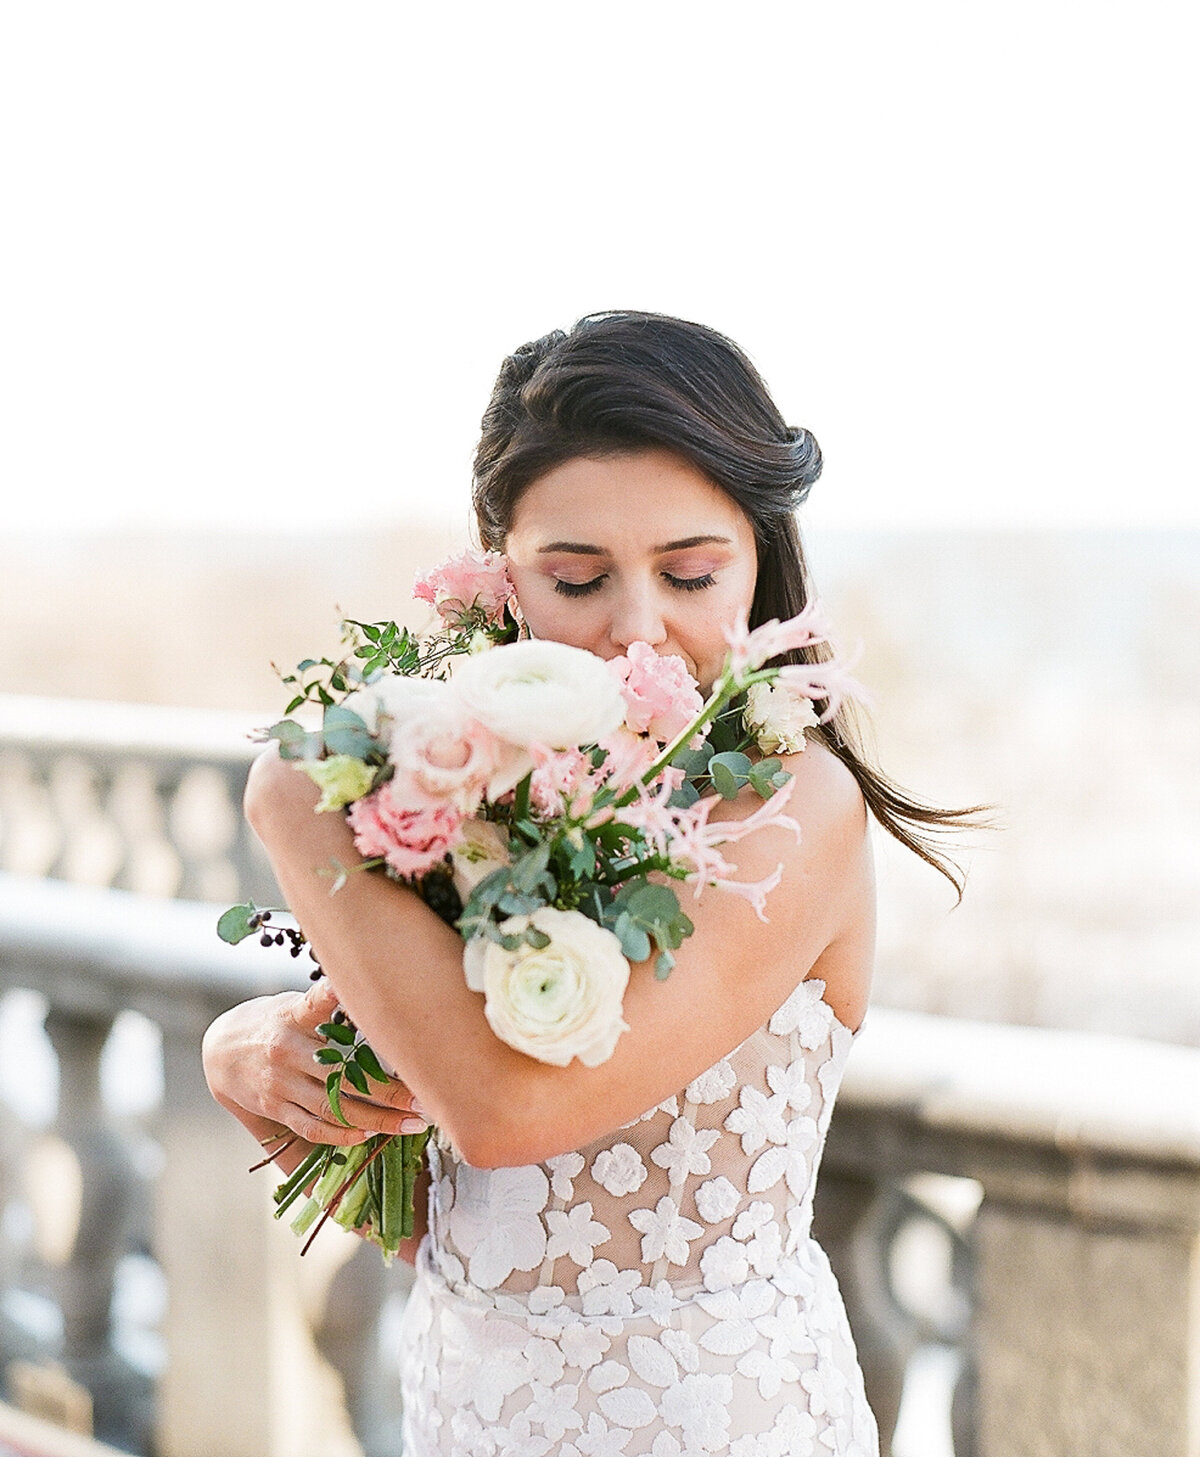 Bride posing with bouquet at Italian villa